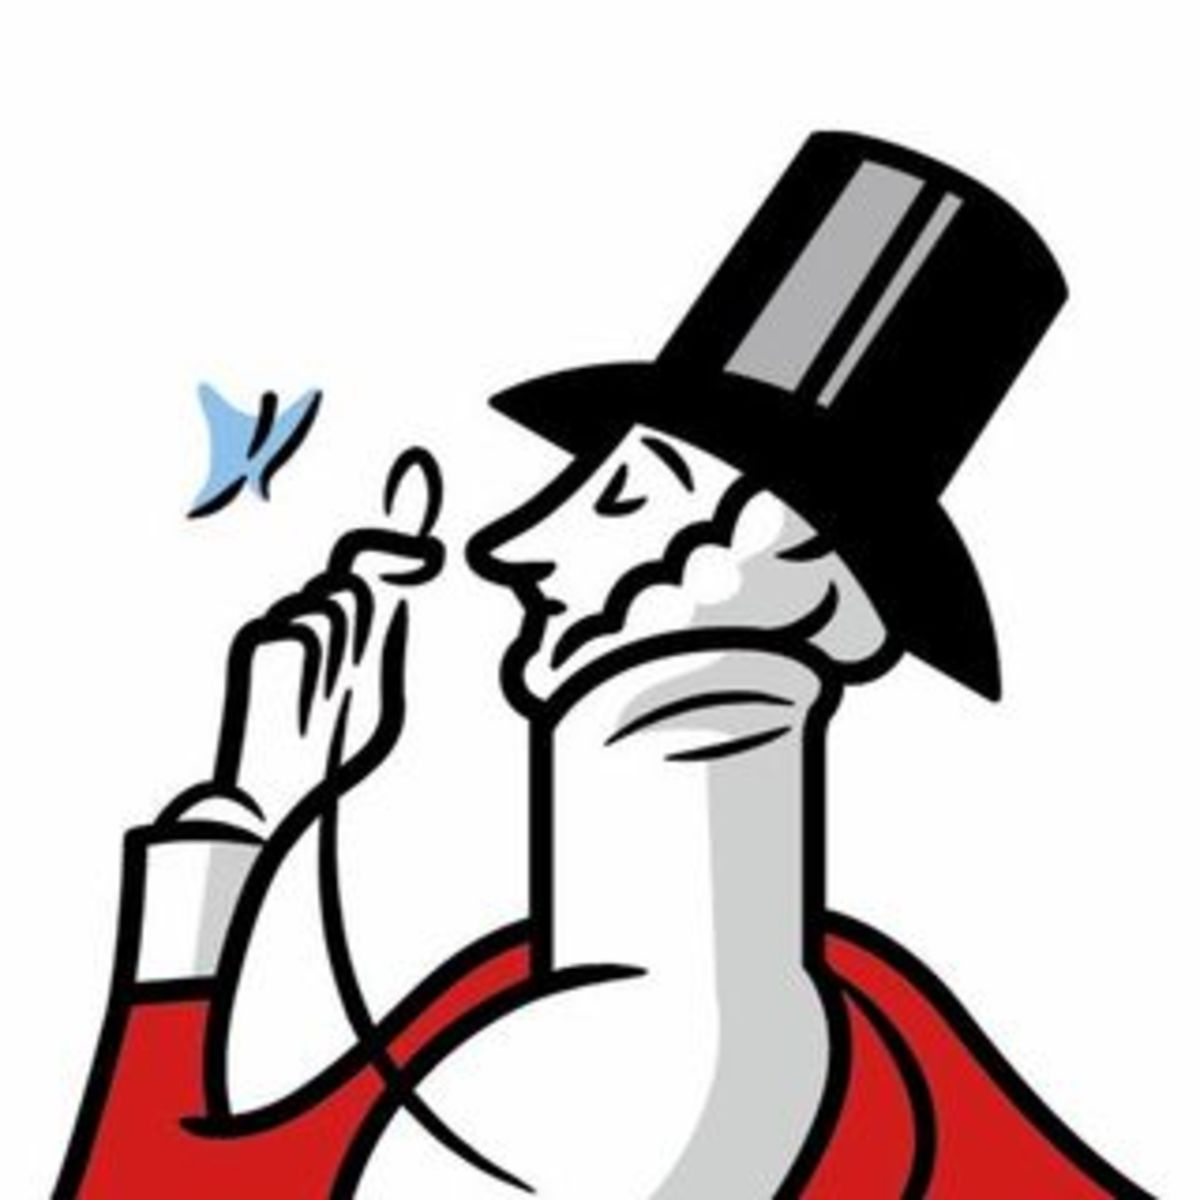 If you see Eustace Tilley's Monocle Man at the Boone, Iowa Post Office, Trust Me. He's Lost.